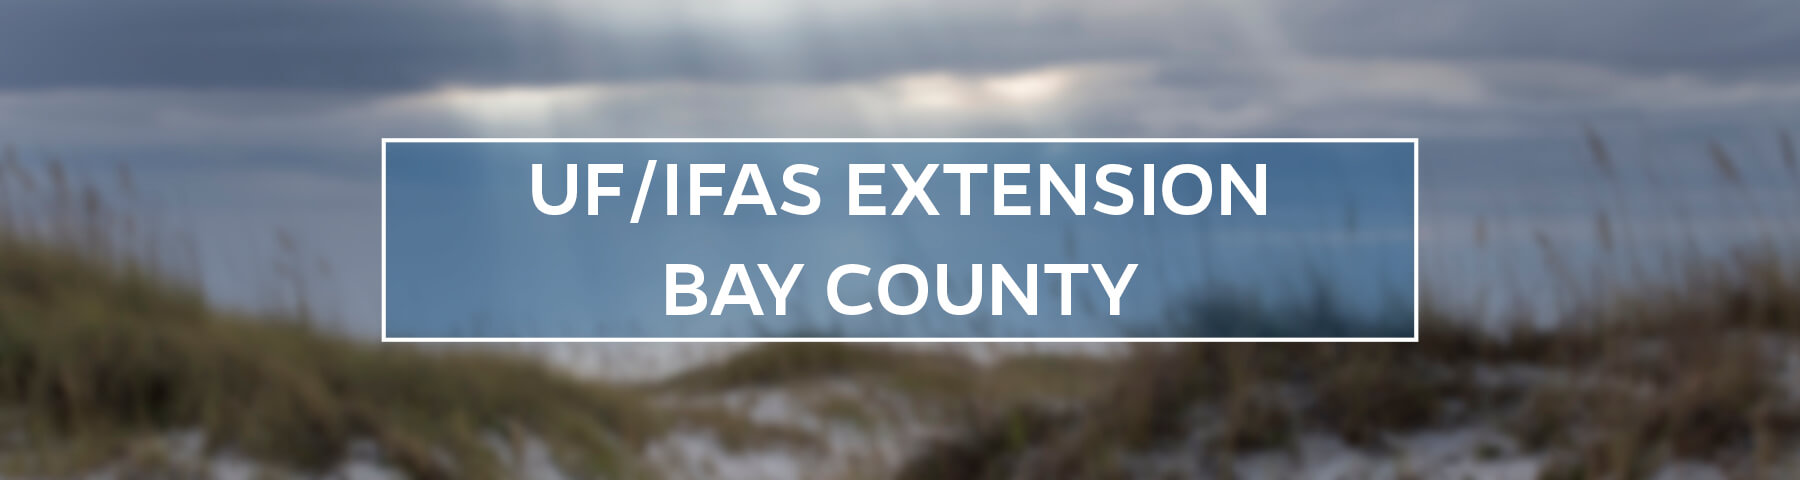 UF/IFAS Extension Bay County